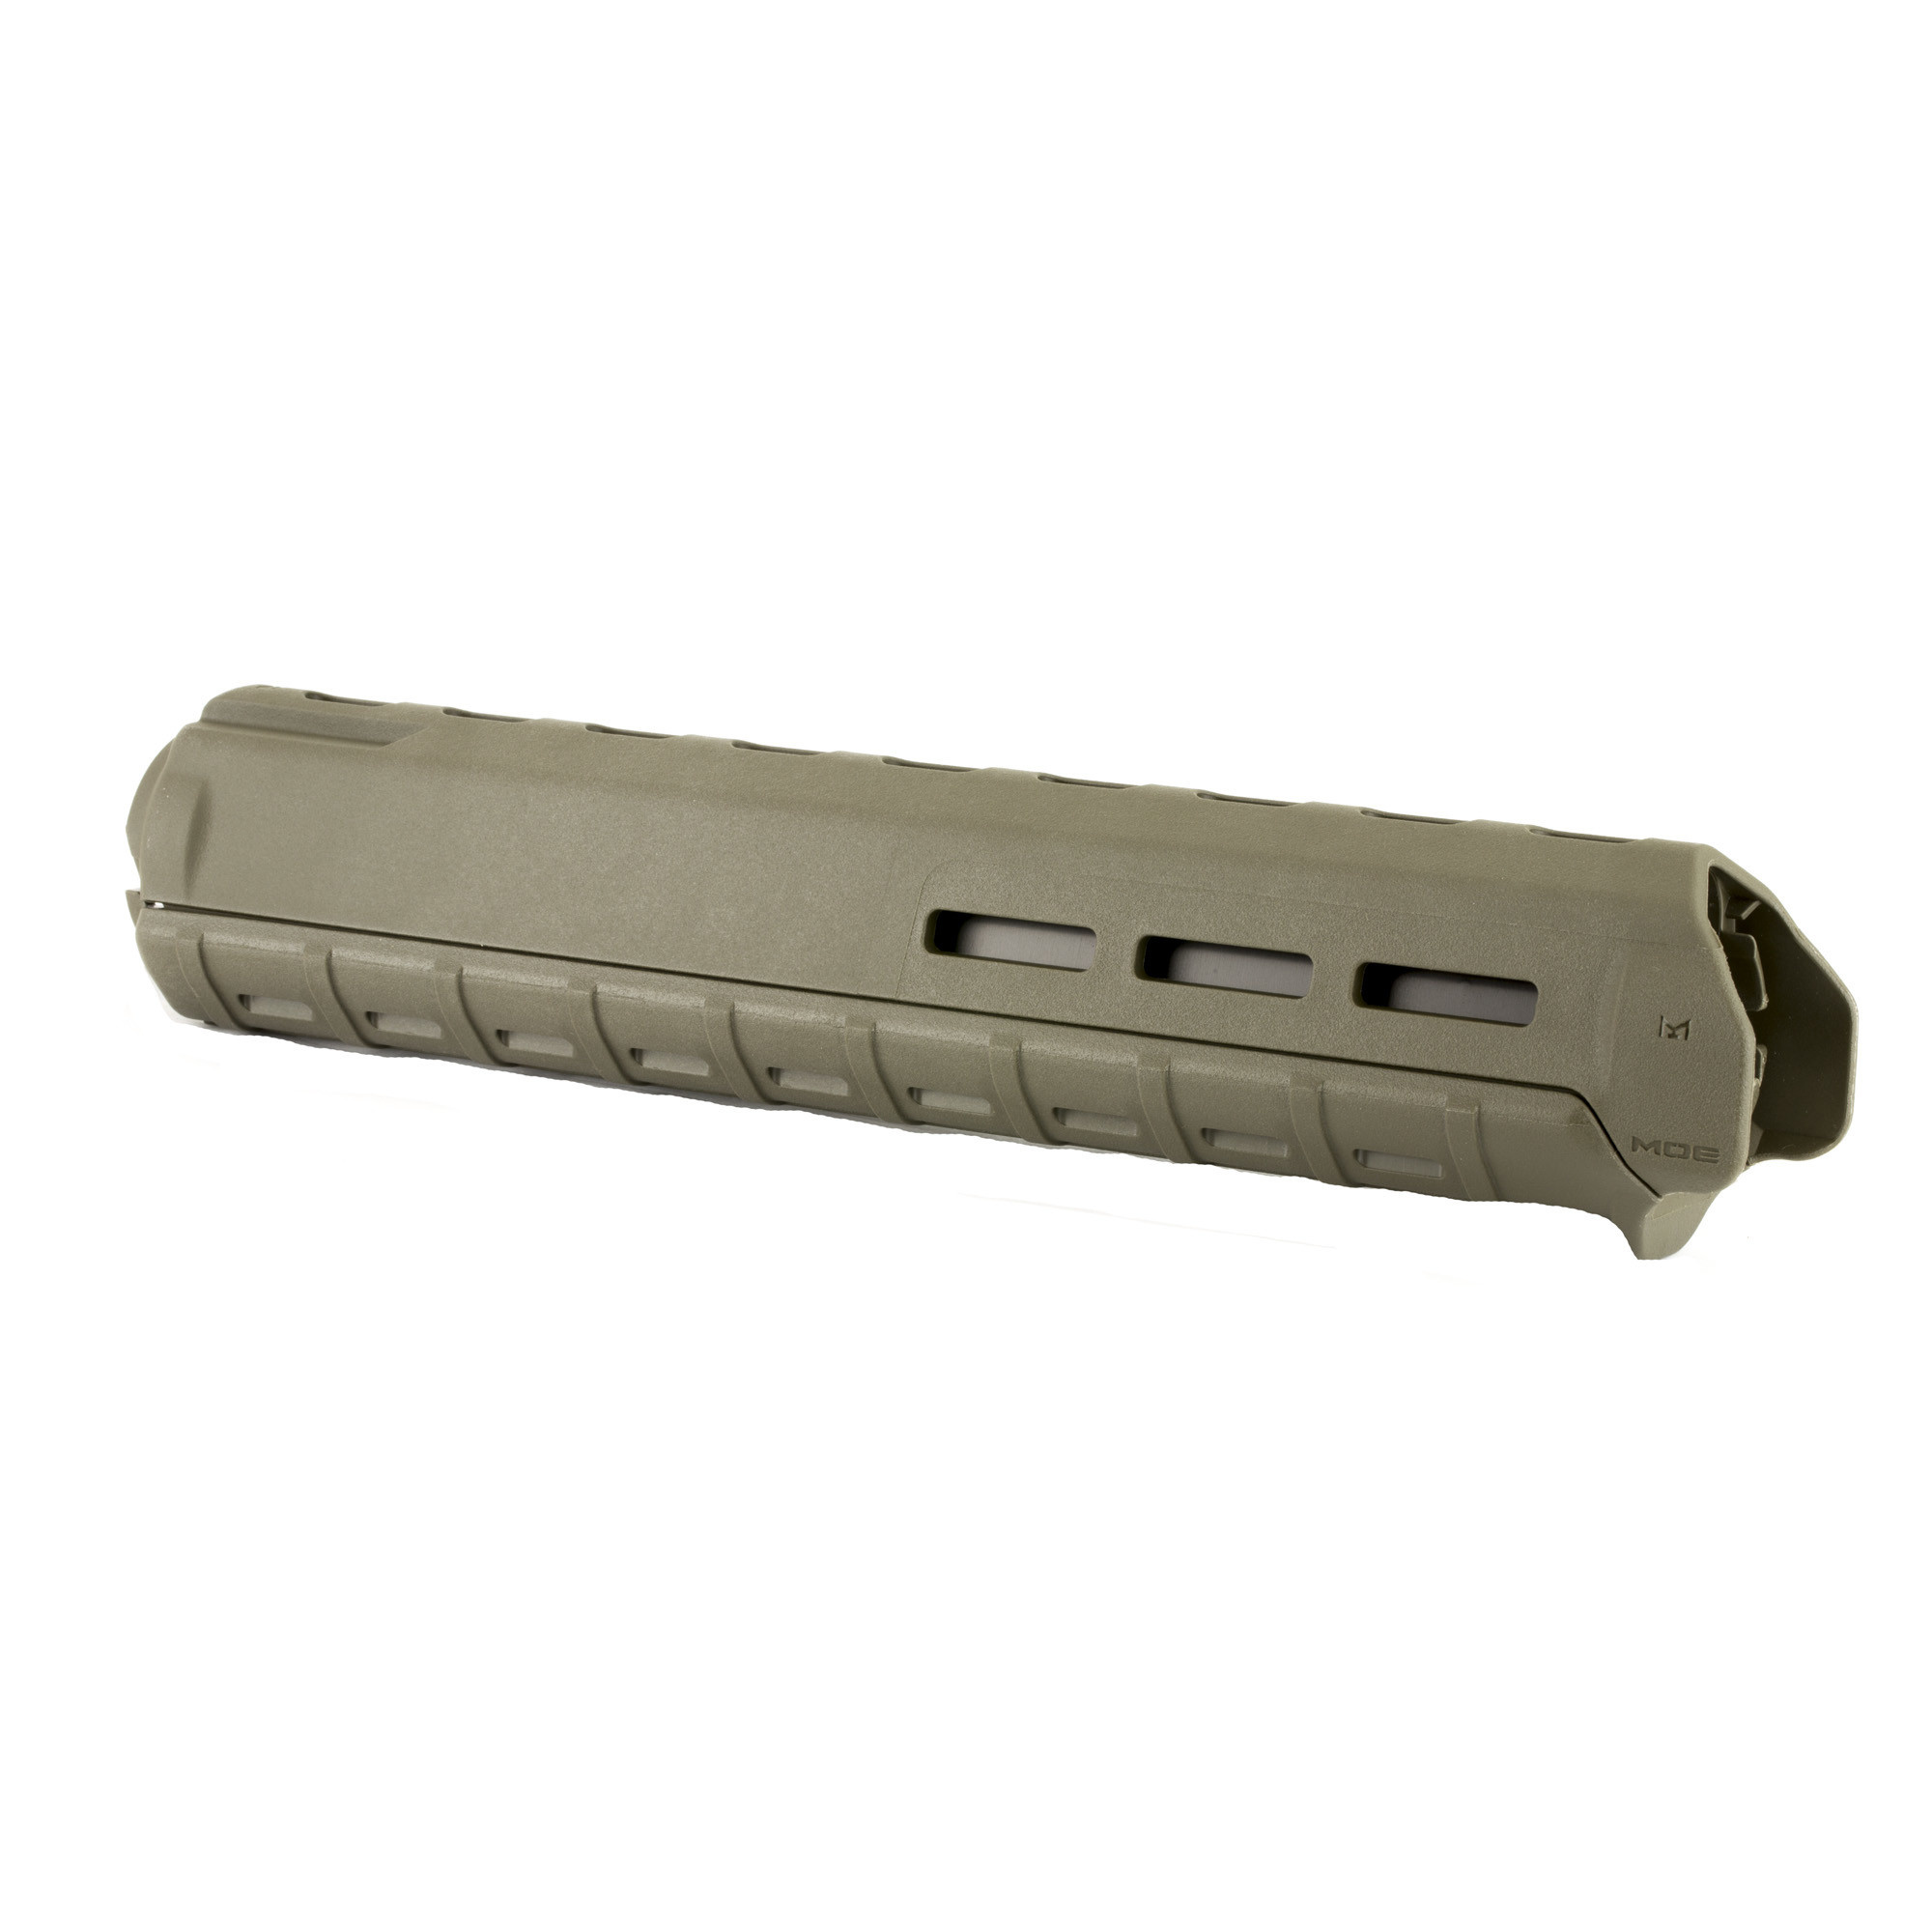 Magpul MOE M-LOK Hand Guard Rifle Length AR15